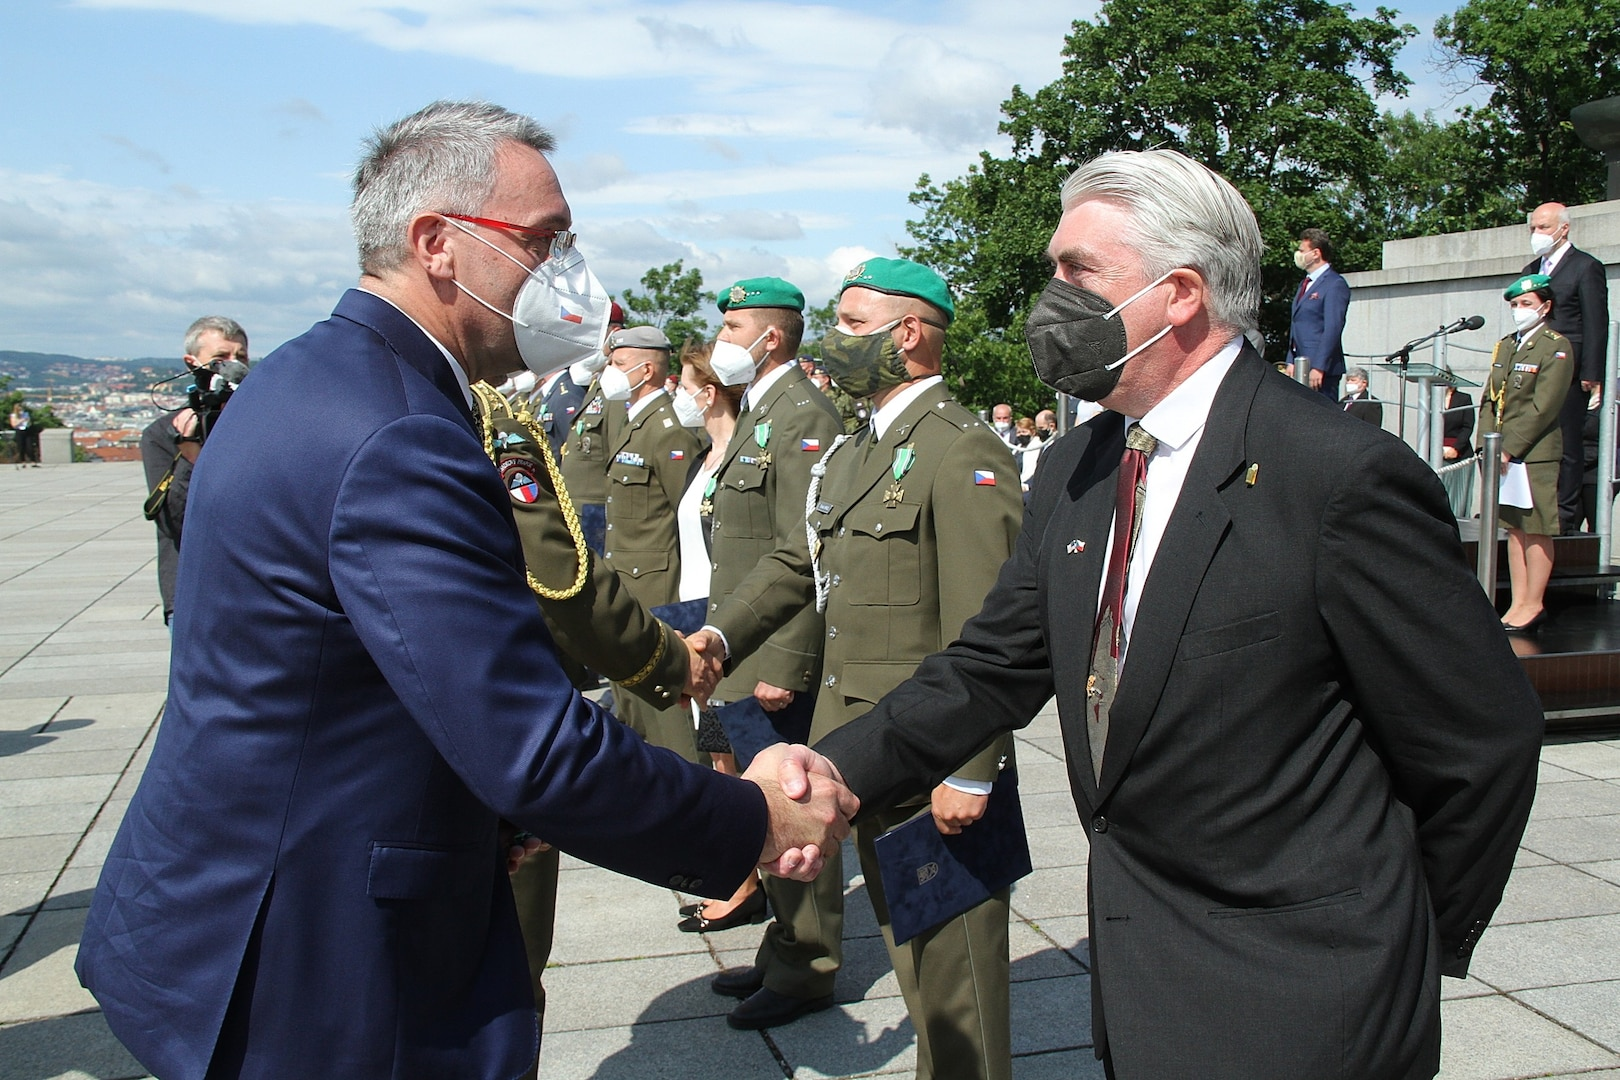 Czech Republic Minister of Defence, Lubomir Metna, greeting Dr. Stephen D. O'Regan.